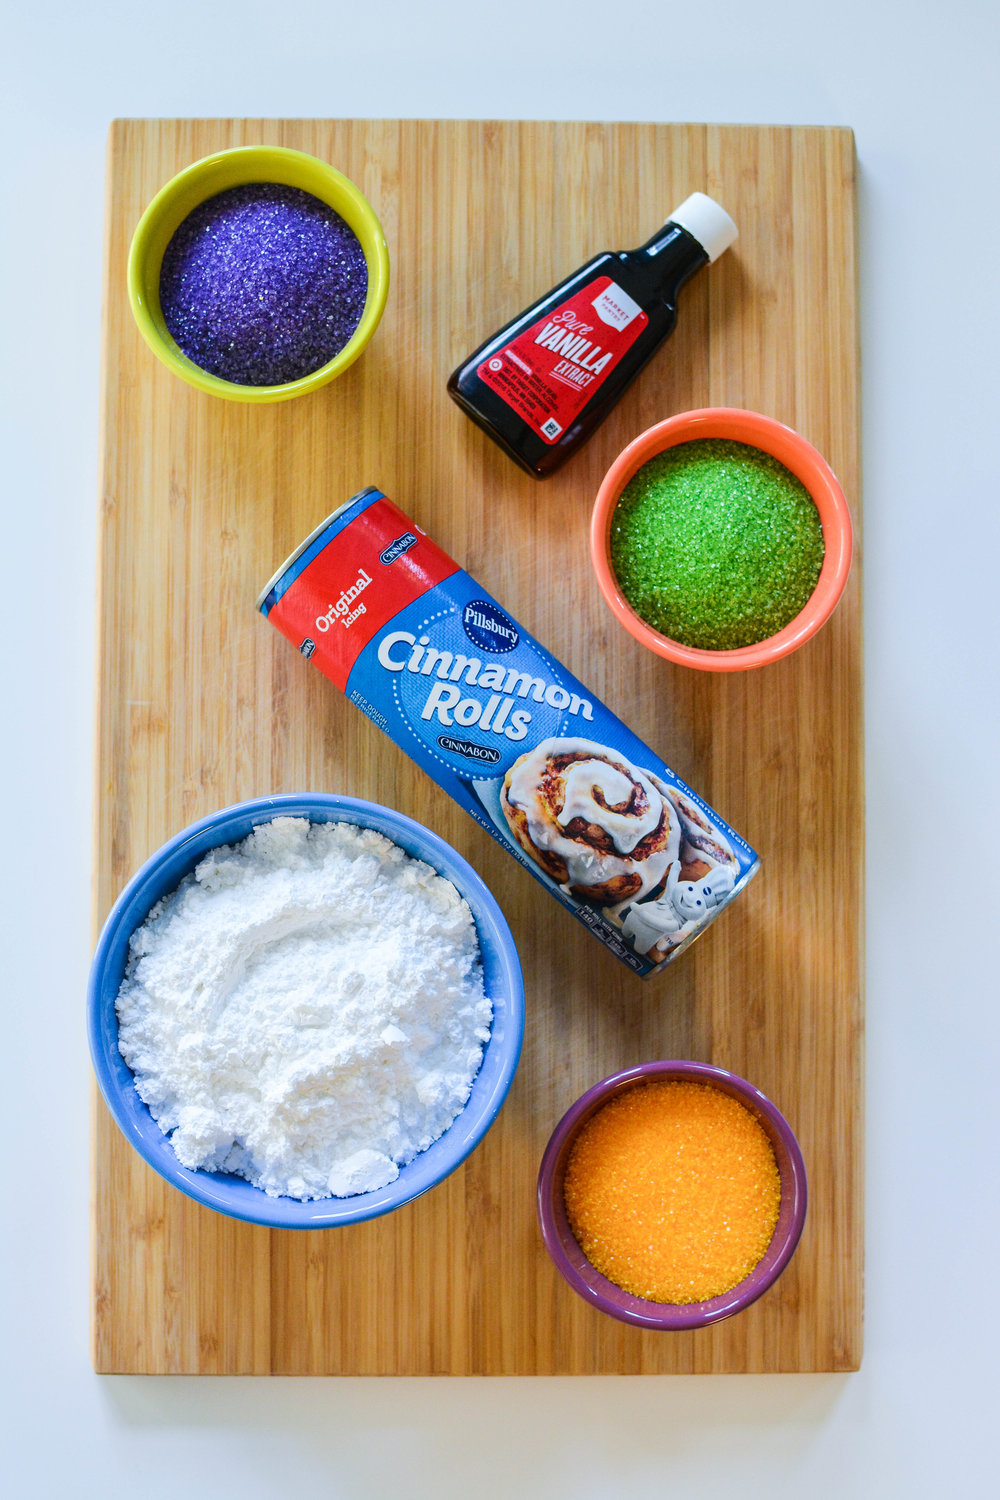 King Cake Donut ingredients